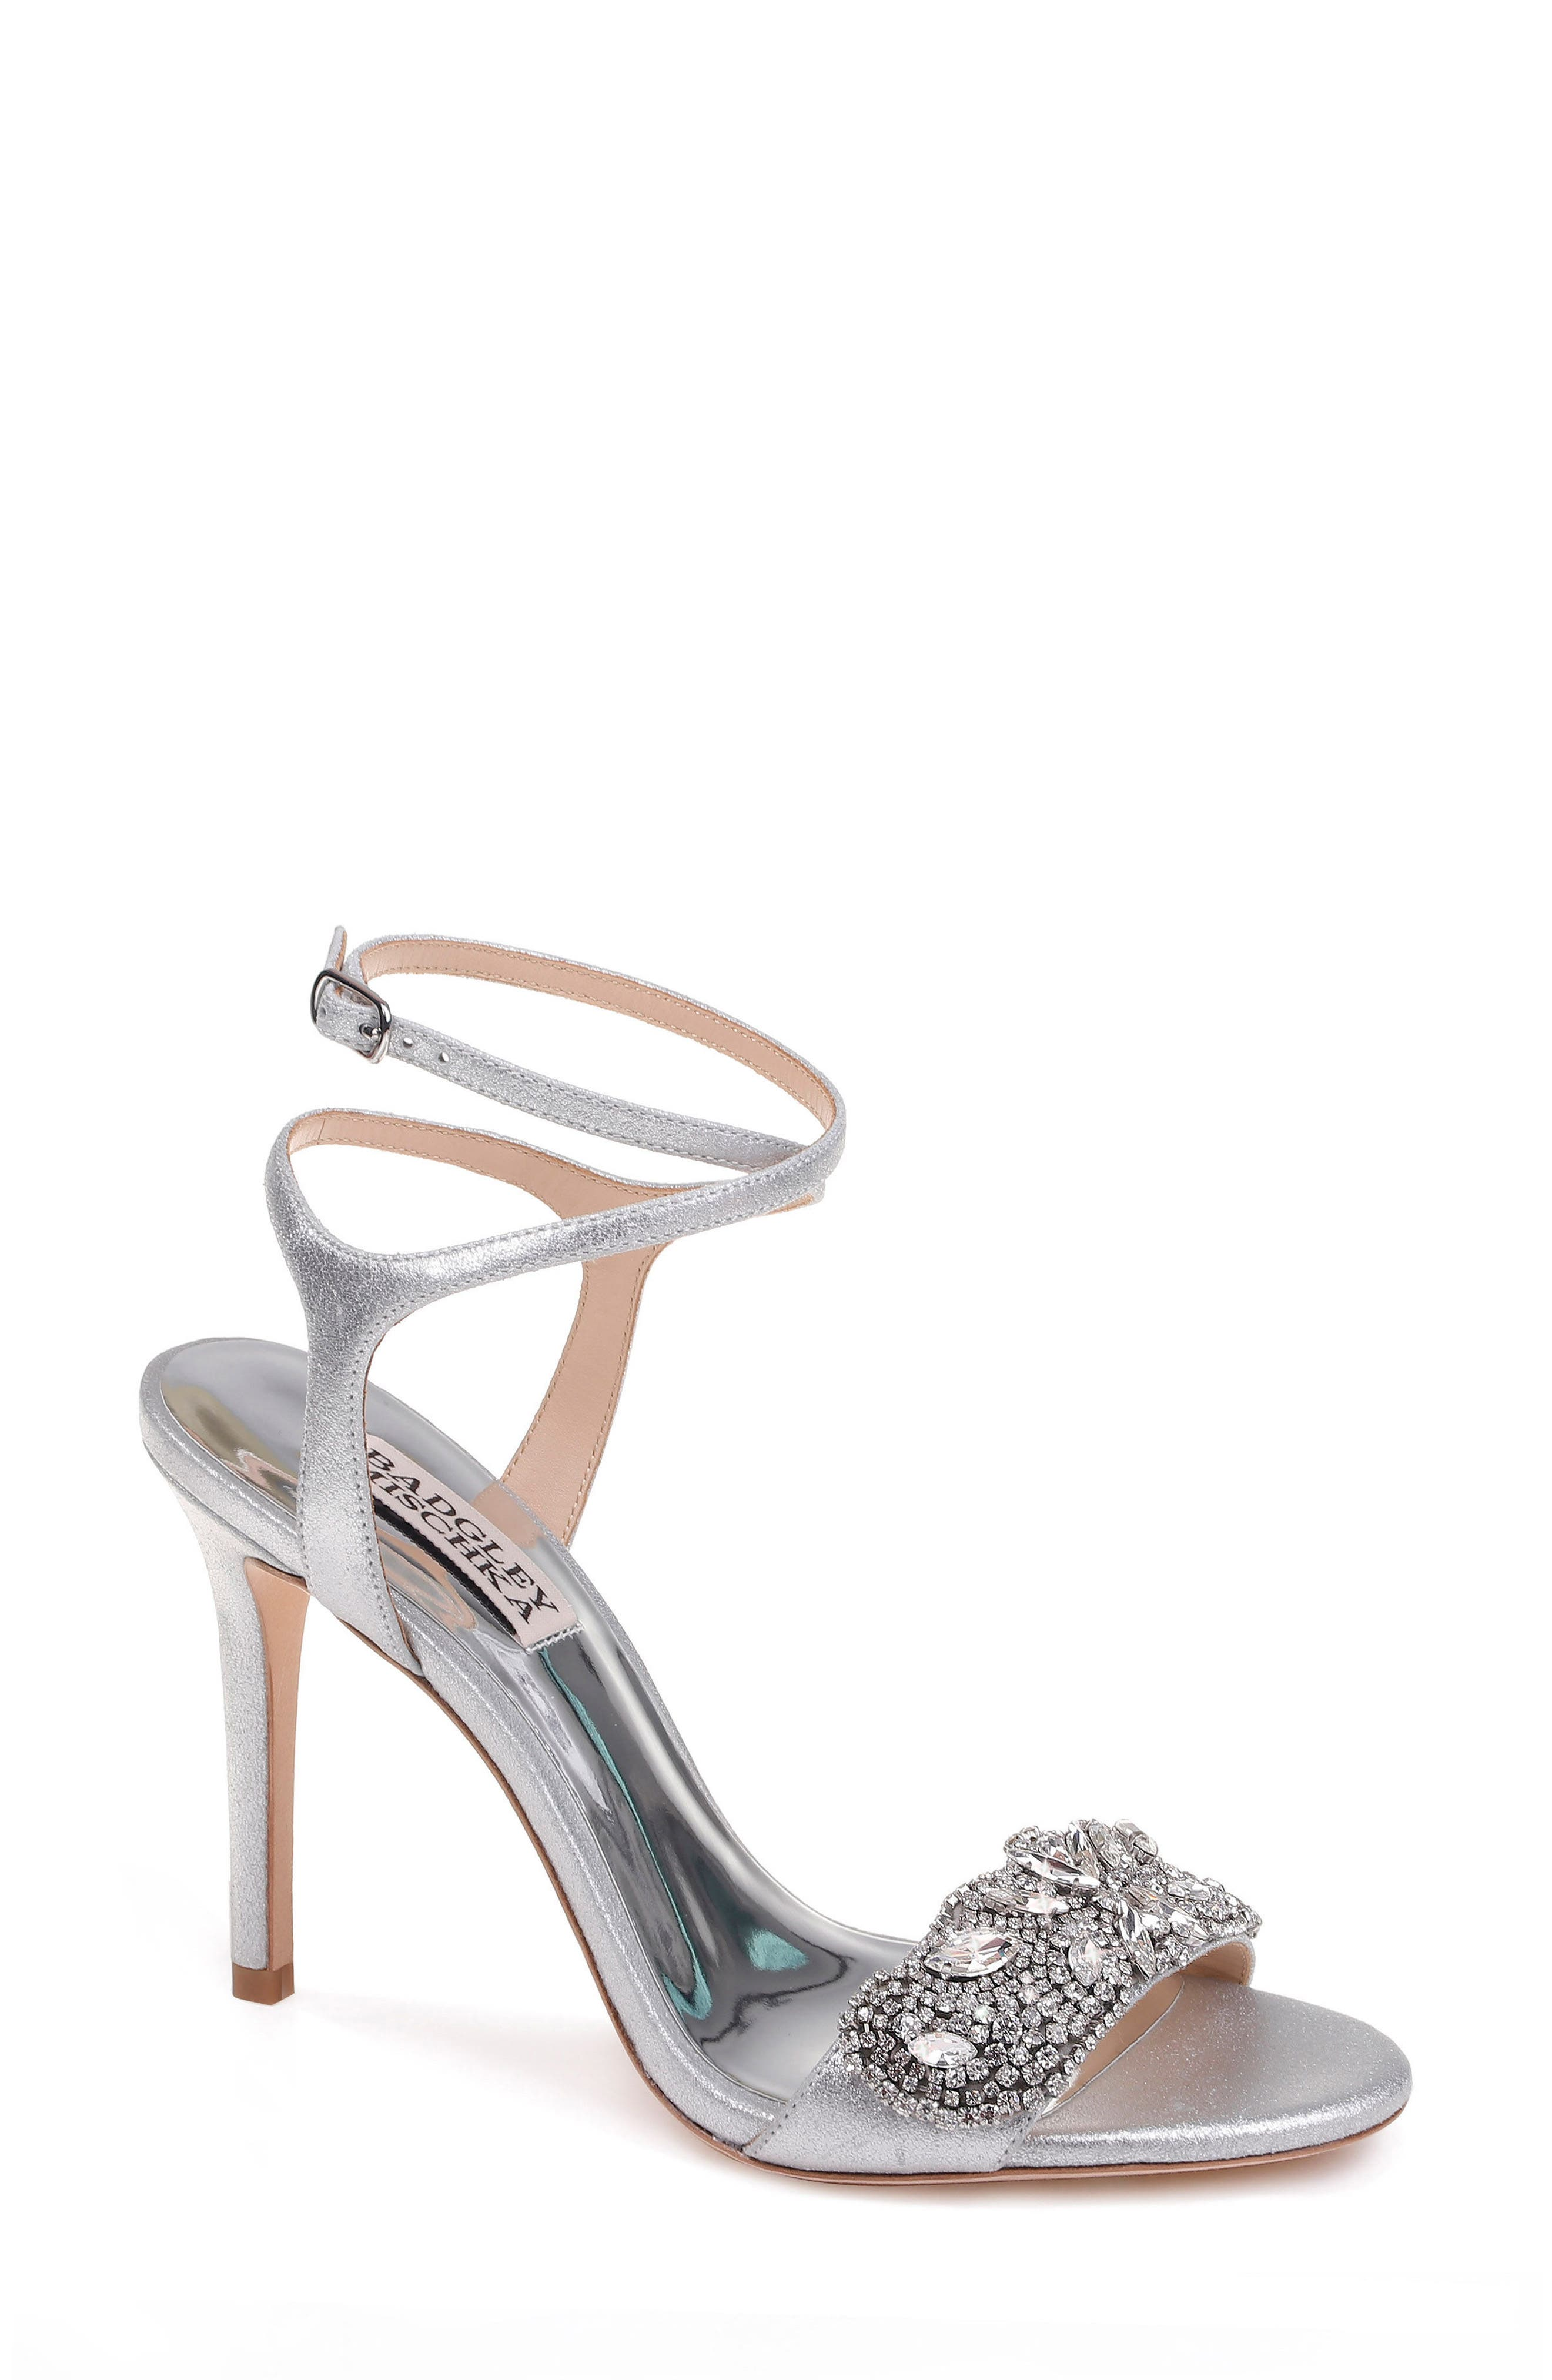 Hailey Embellished Ankle Strap Sandal,                             Main thumbnail 1, color,                             Silver Metallic Suede